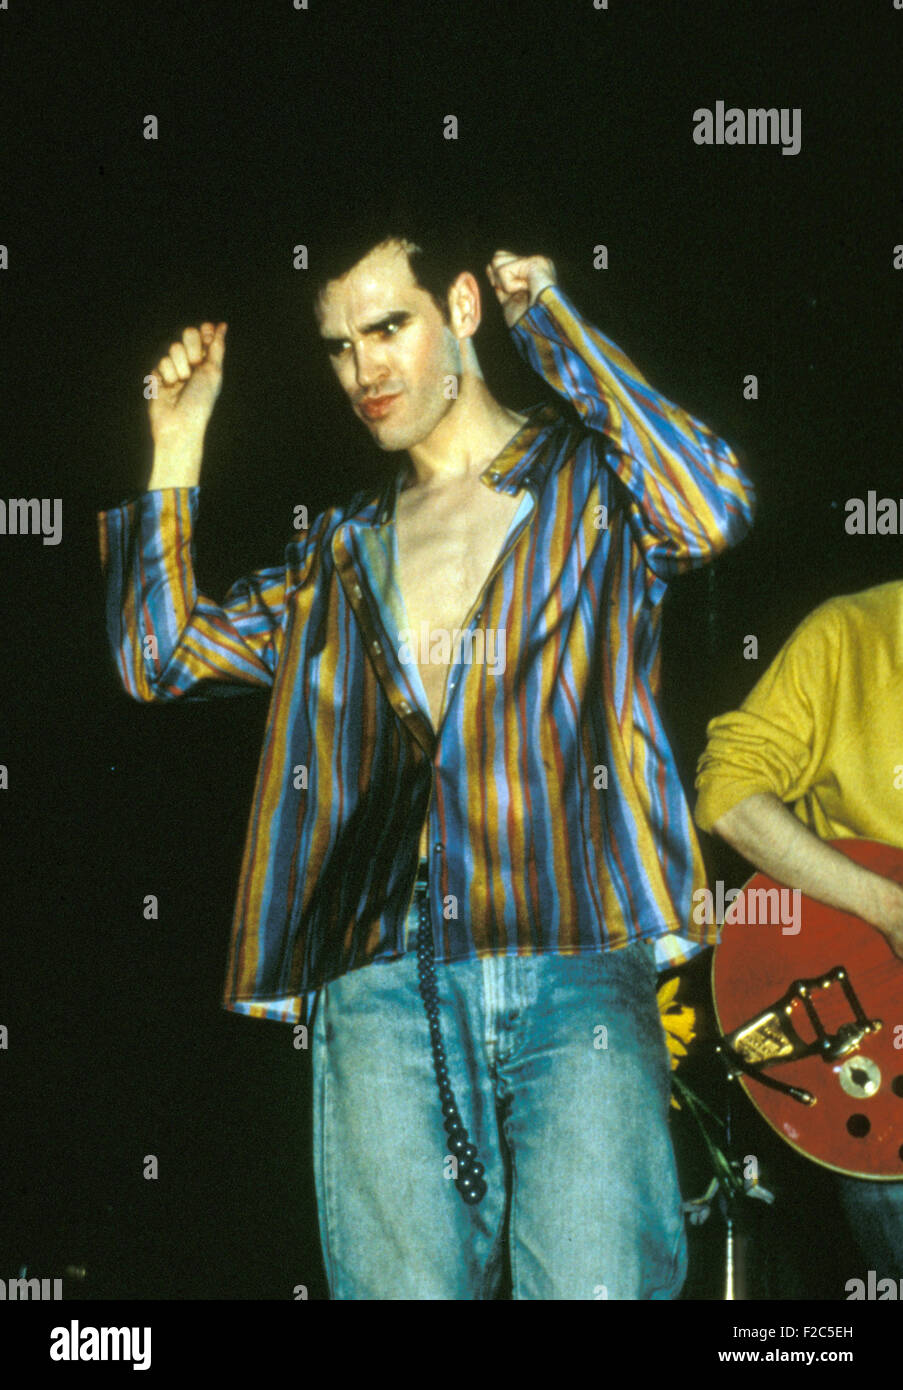 THE SMITHS  UK group with singer Morrissey in October 1986 - Stock Image